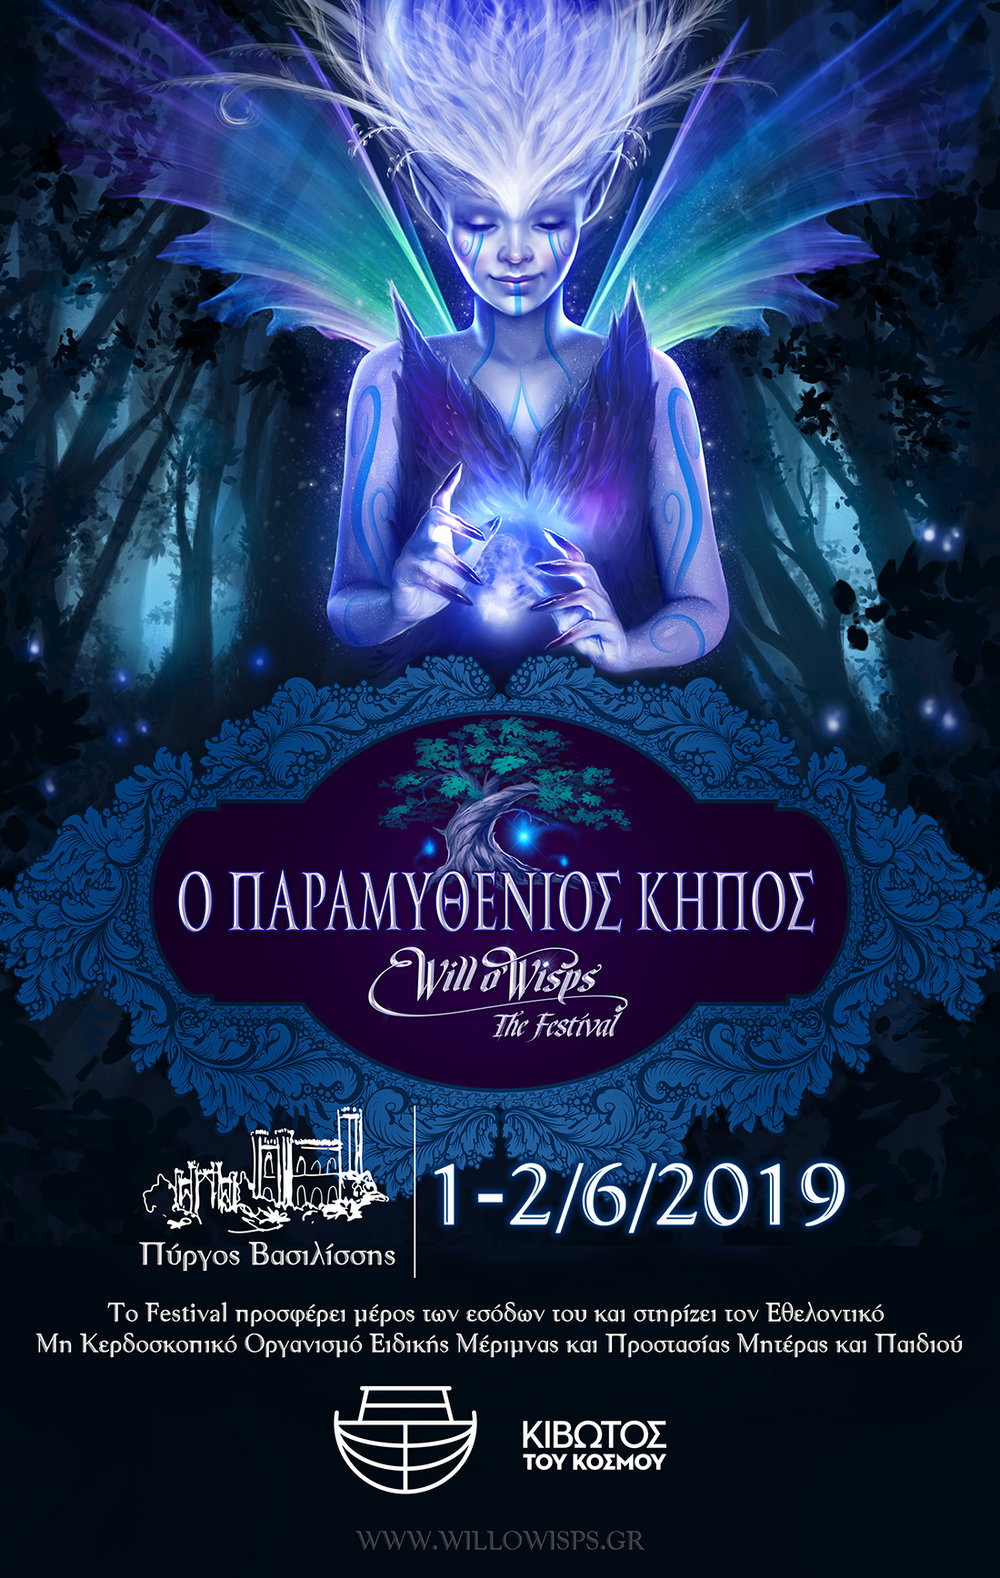 Will o' Wisps festival 2019 new poster final for media.jpg